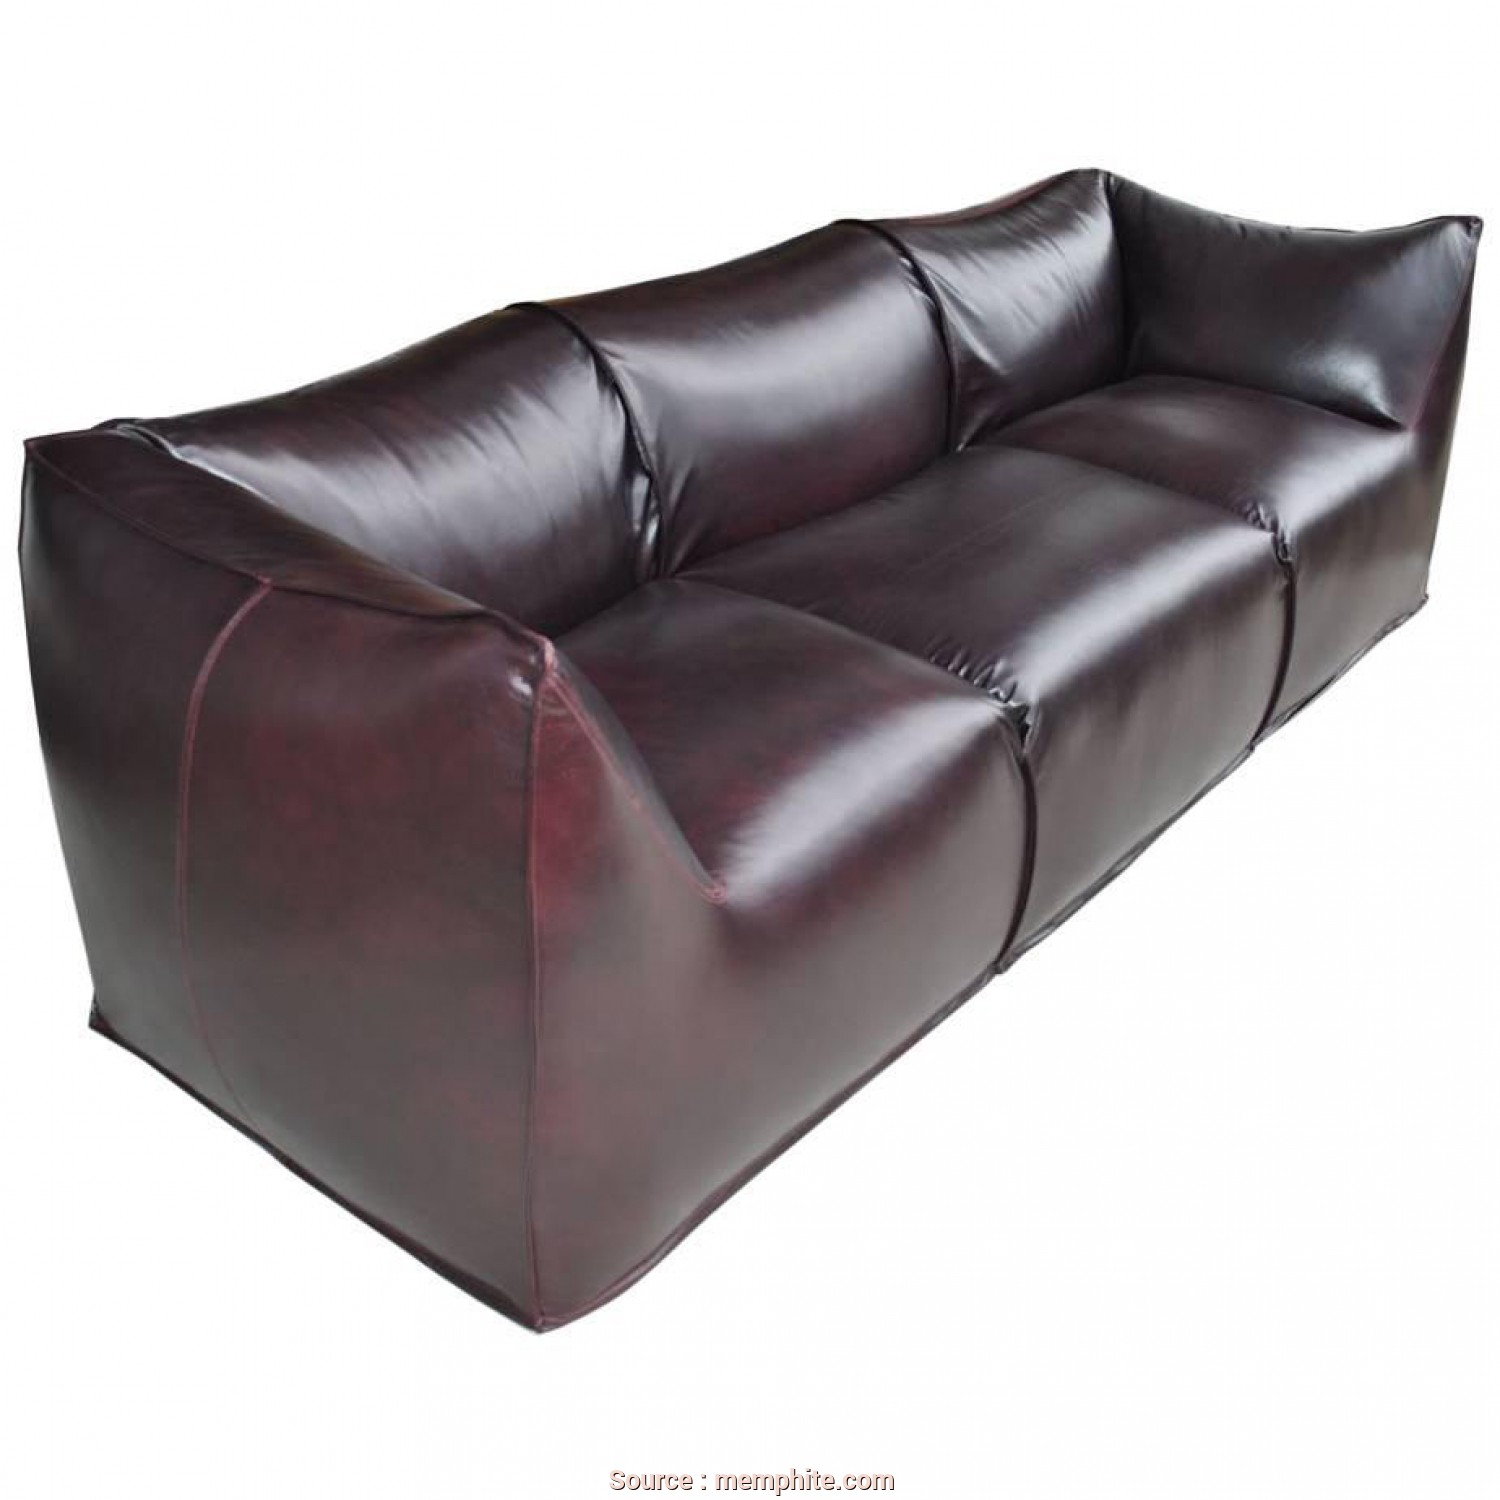 Divano Tentazioni Cassina, Bello Modern Mario Bellini, Cassina La Bambole Three-Seat Leather Sofa Sc 1 St 1StDibs